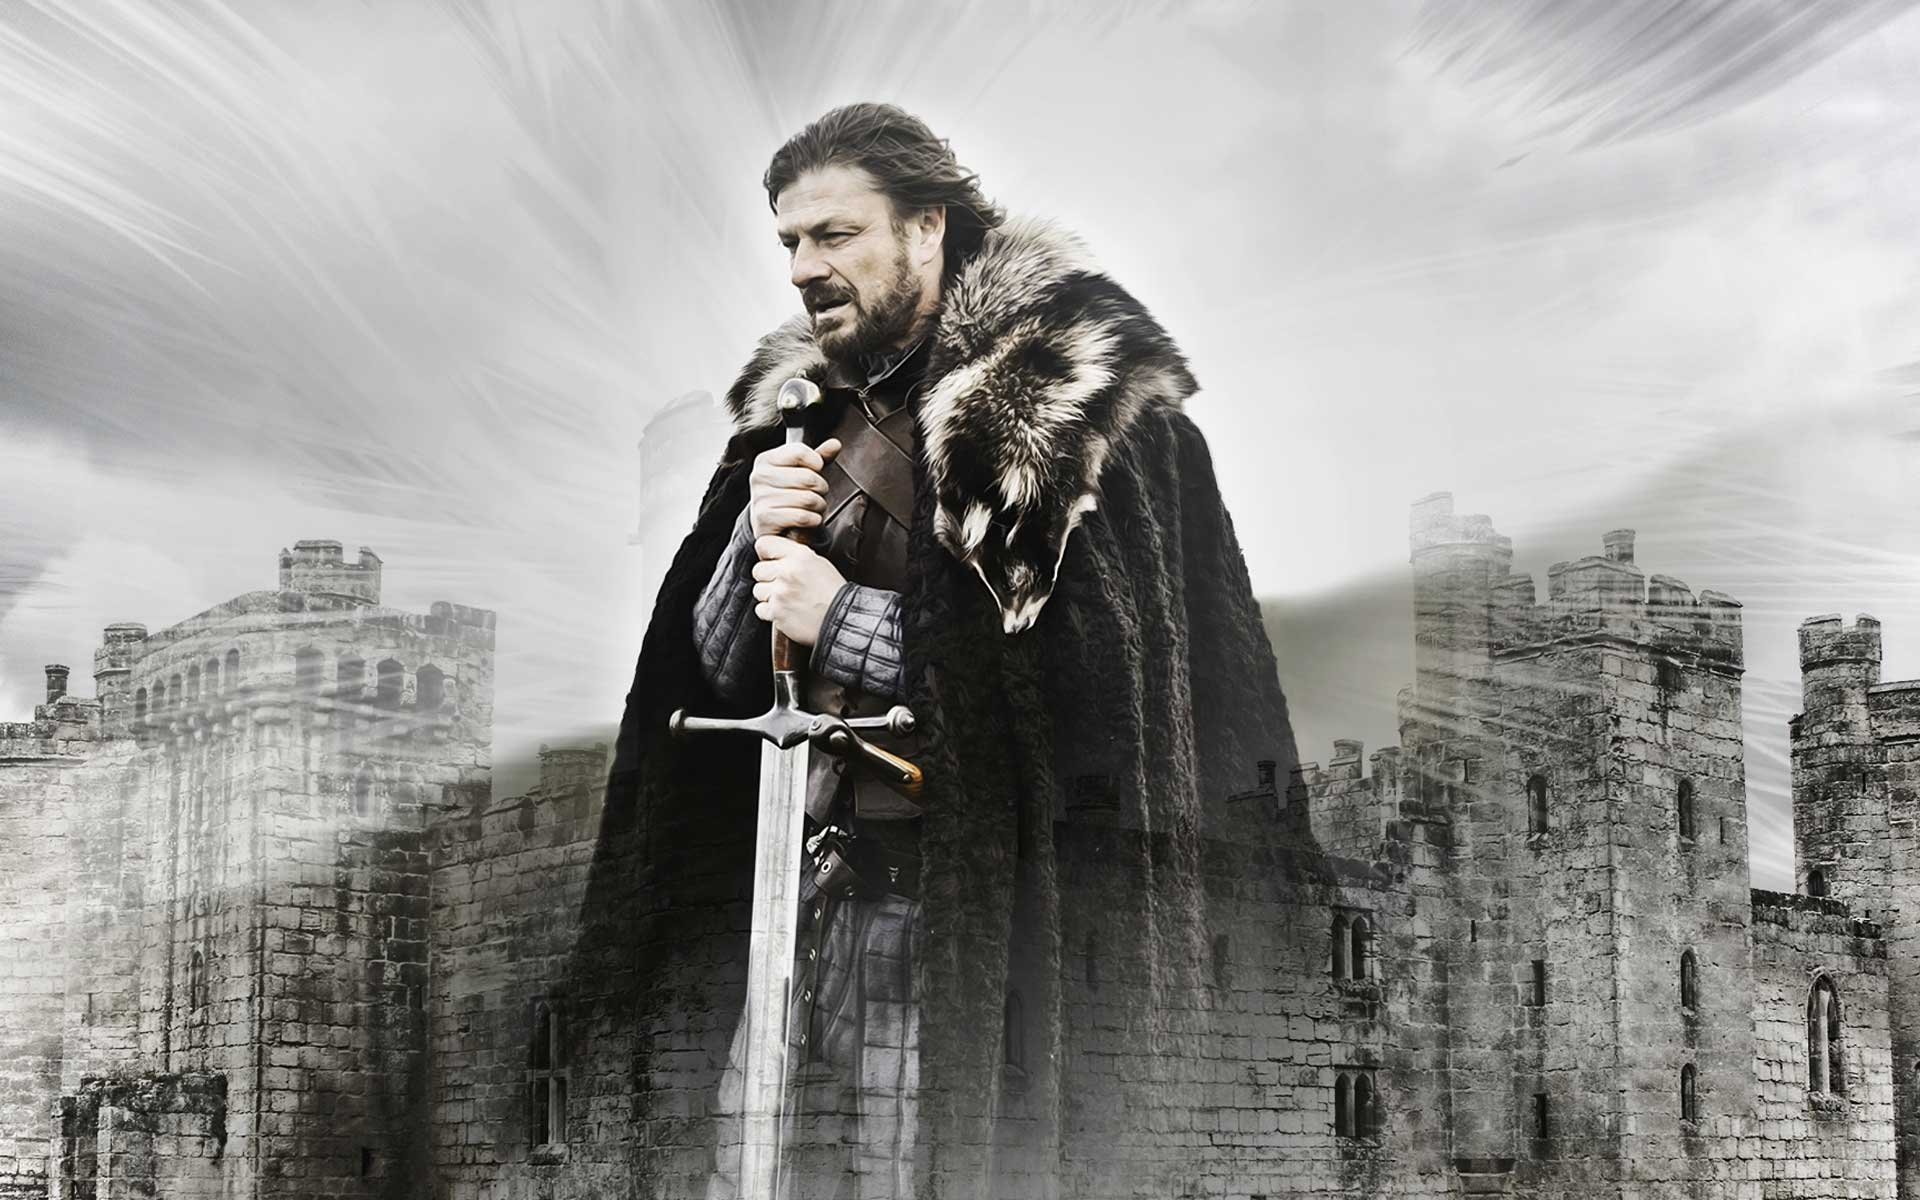 Game of thrones 1080p wallpaper wallpapersafari - 32 inch wallpaper tv ...